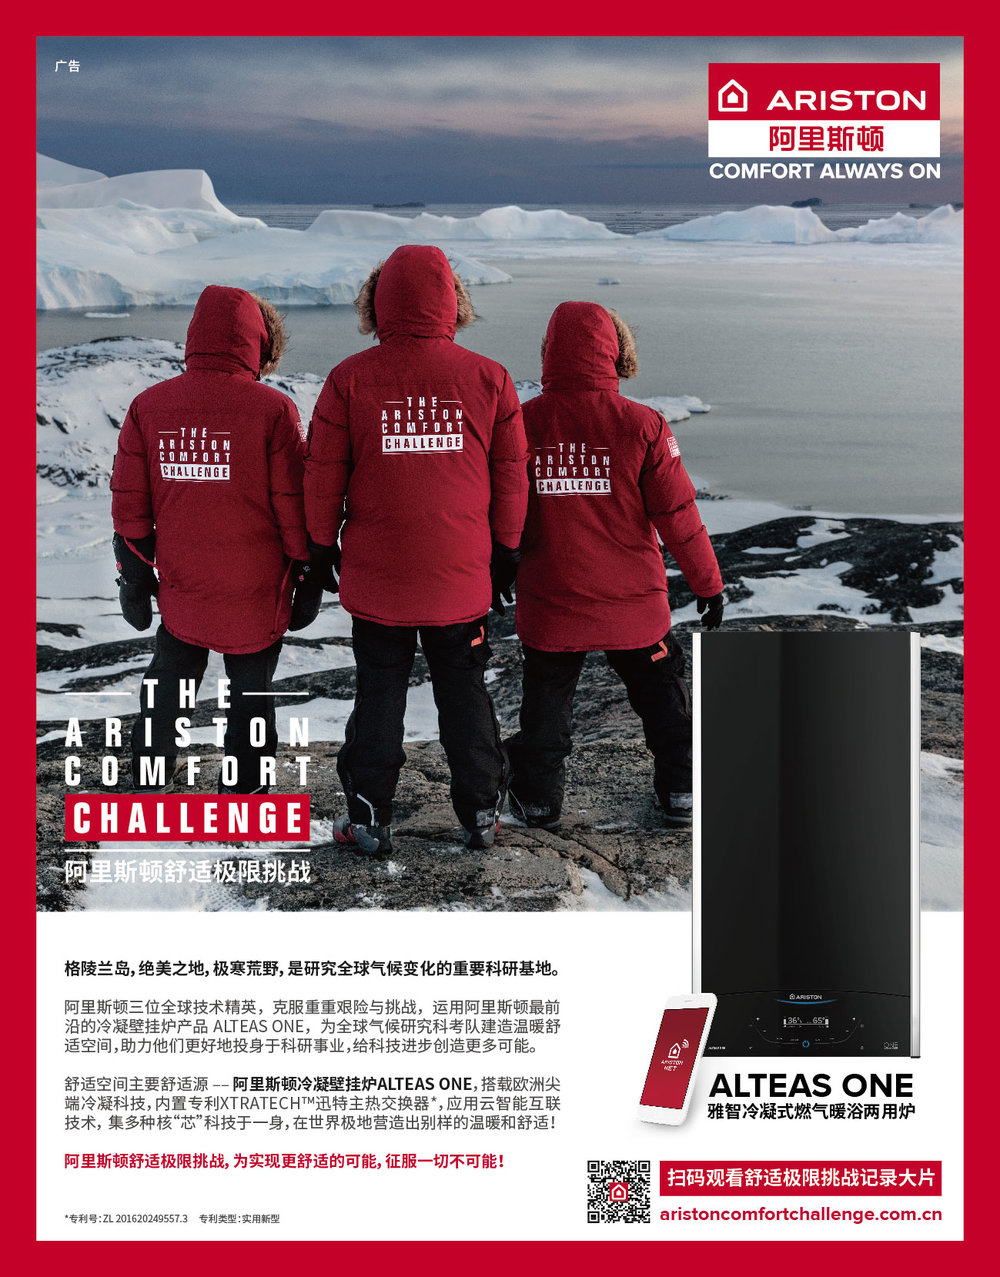 Ariston worldwide campaign, China.